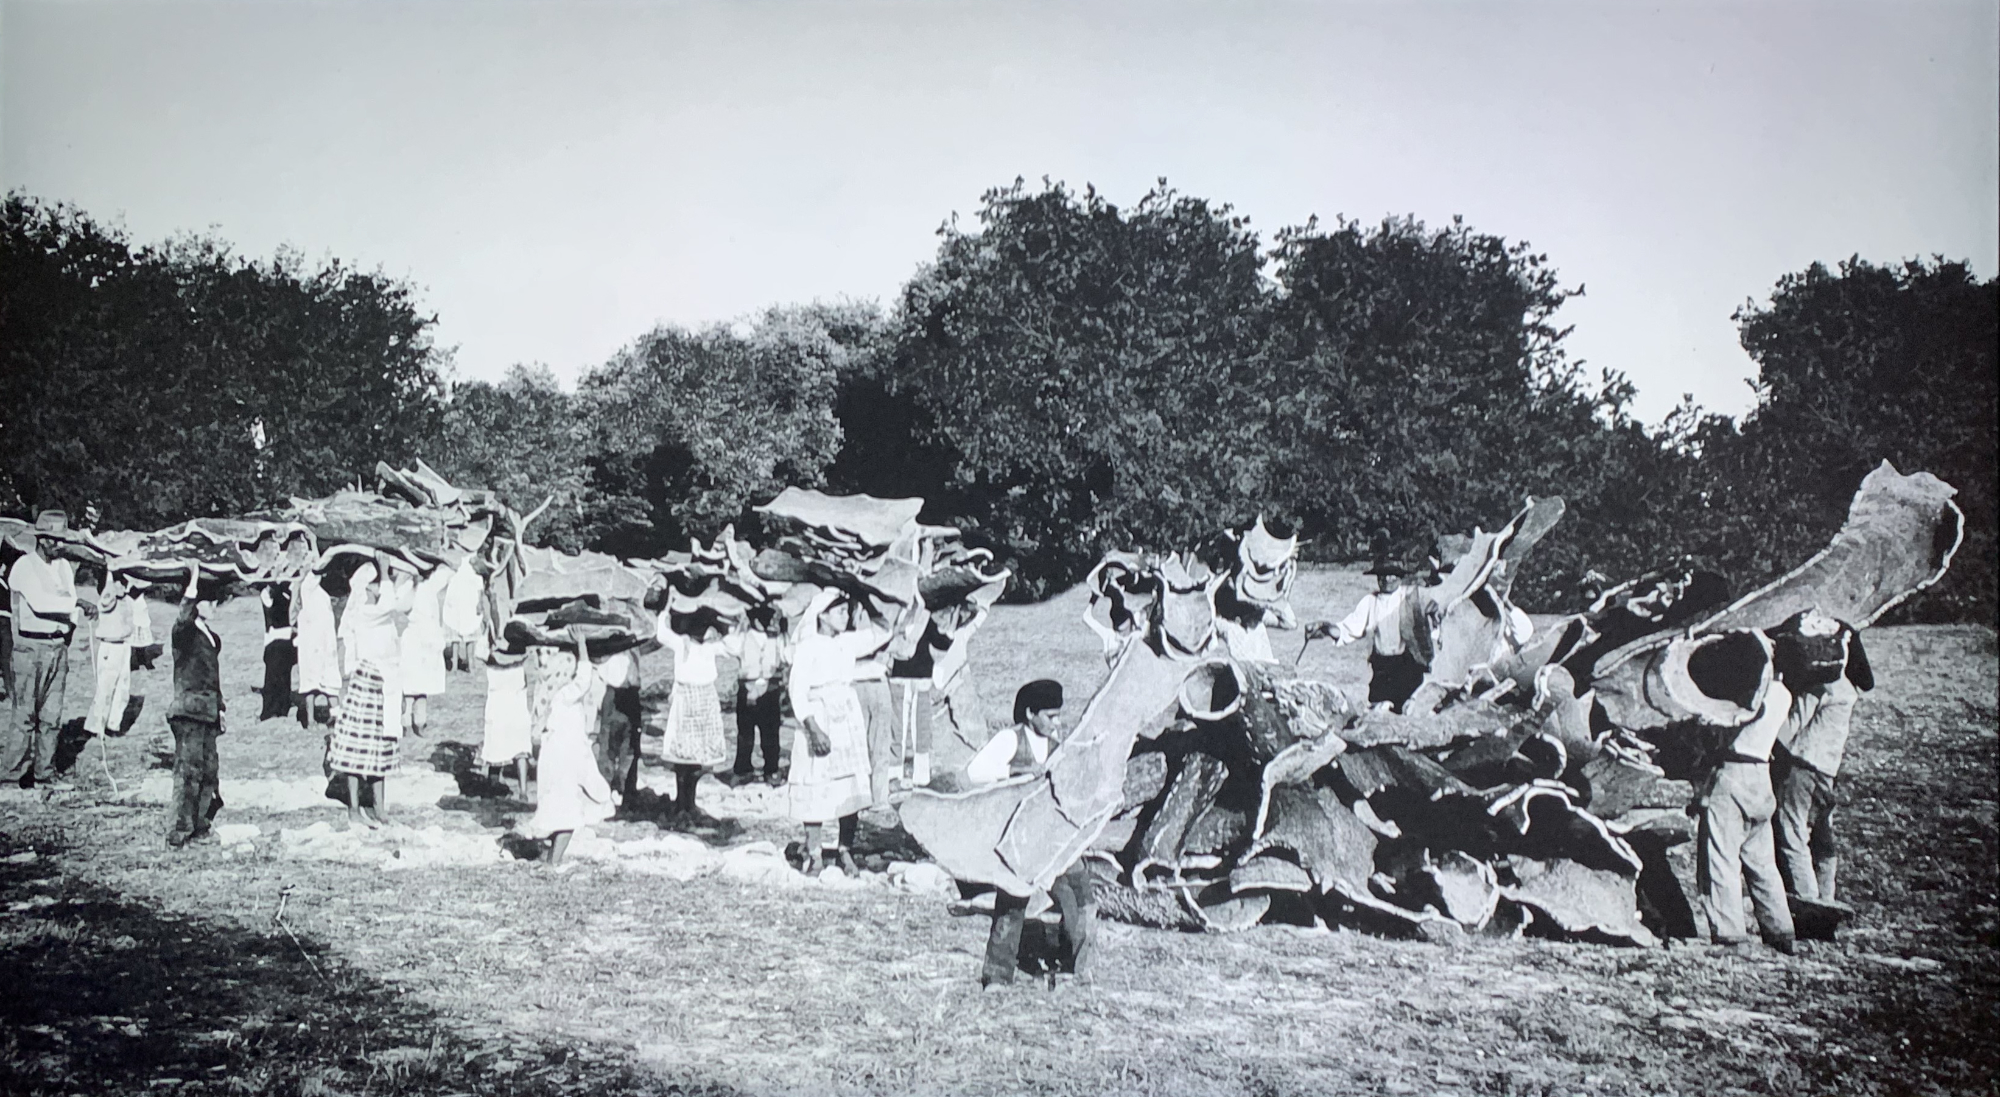 A historic photo showing villagers all engaged in the cork harvest